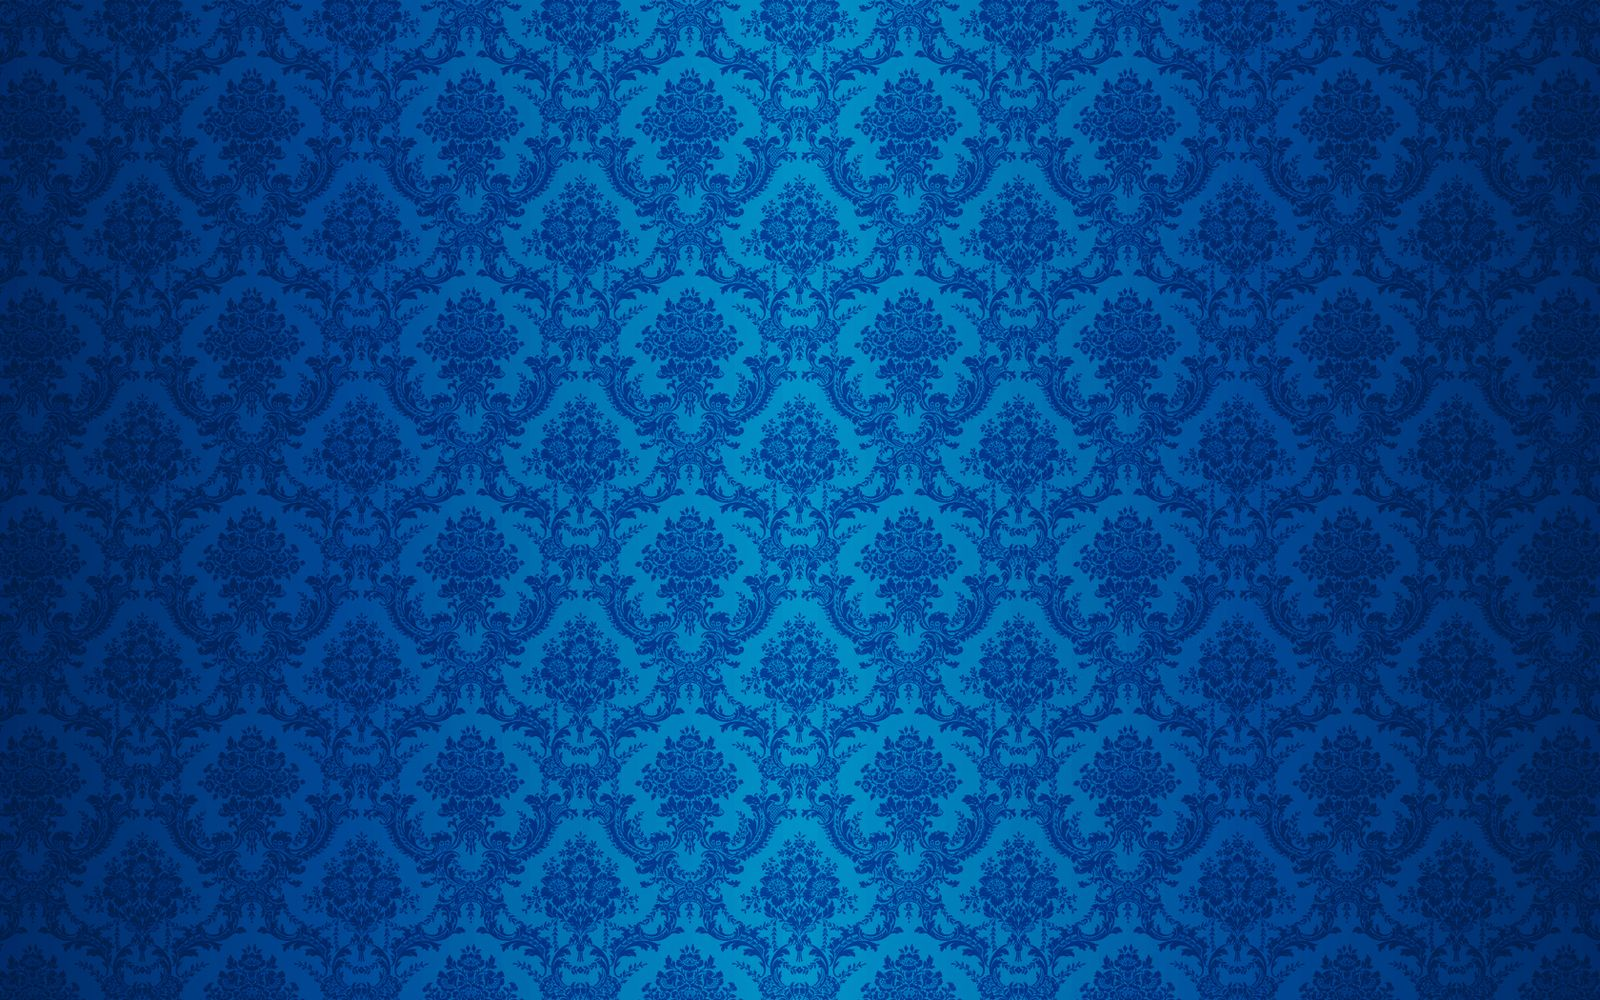 Wallpapers Room Com Flock Damask Wallpaper Ii By Flashingblade 1600x1000 Carbon Fiber Wallpaper Blue Wallpapers Royal Blue Wallpaper